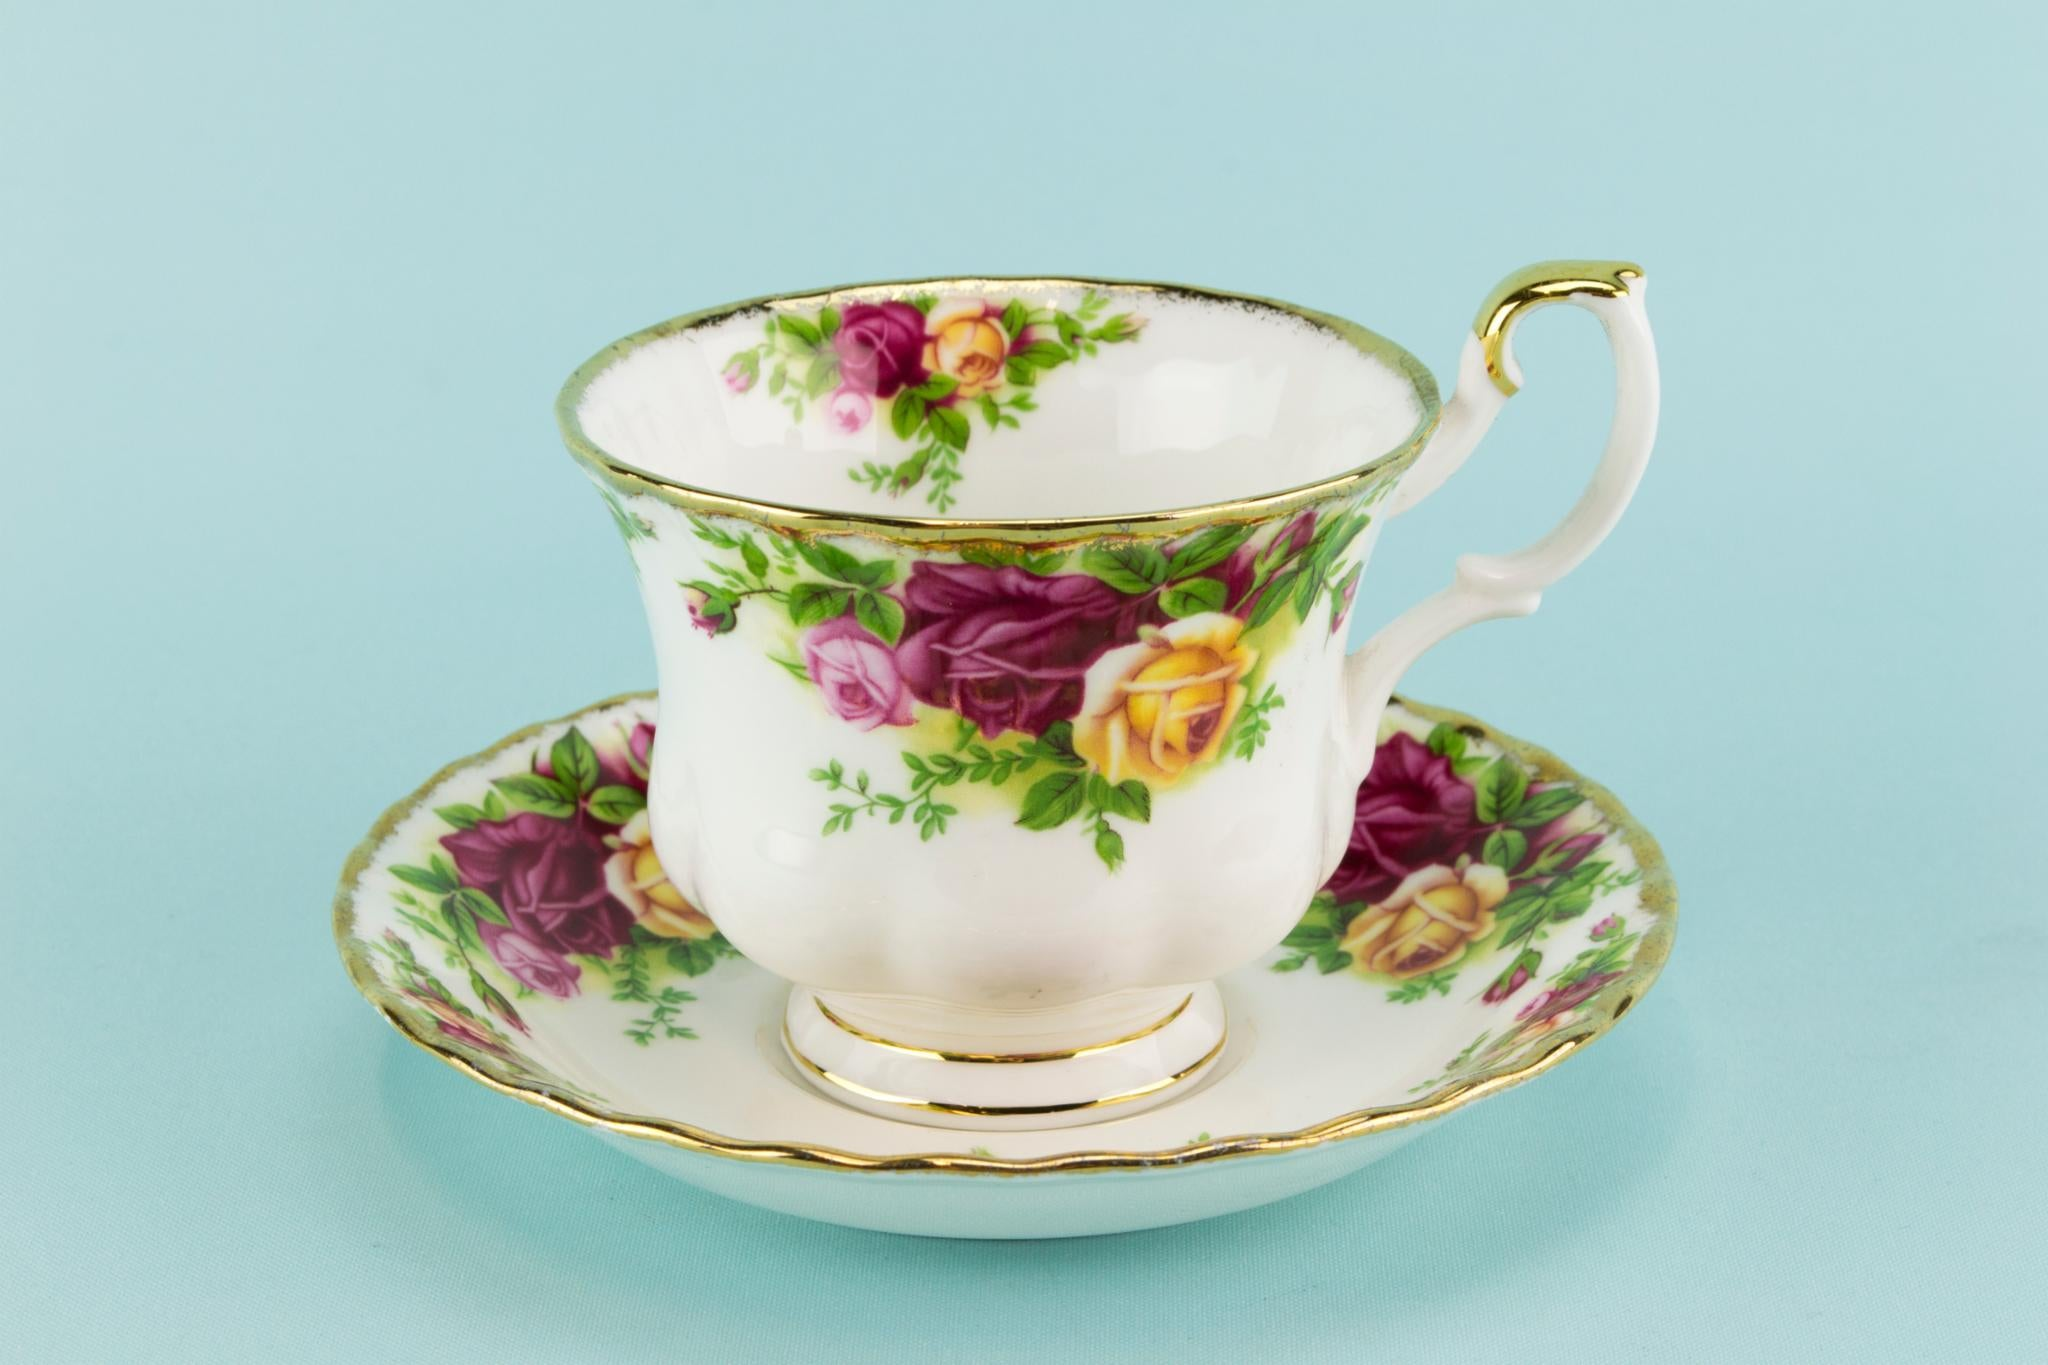 Royal Albert teacup saucer and plate 1960s